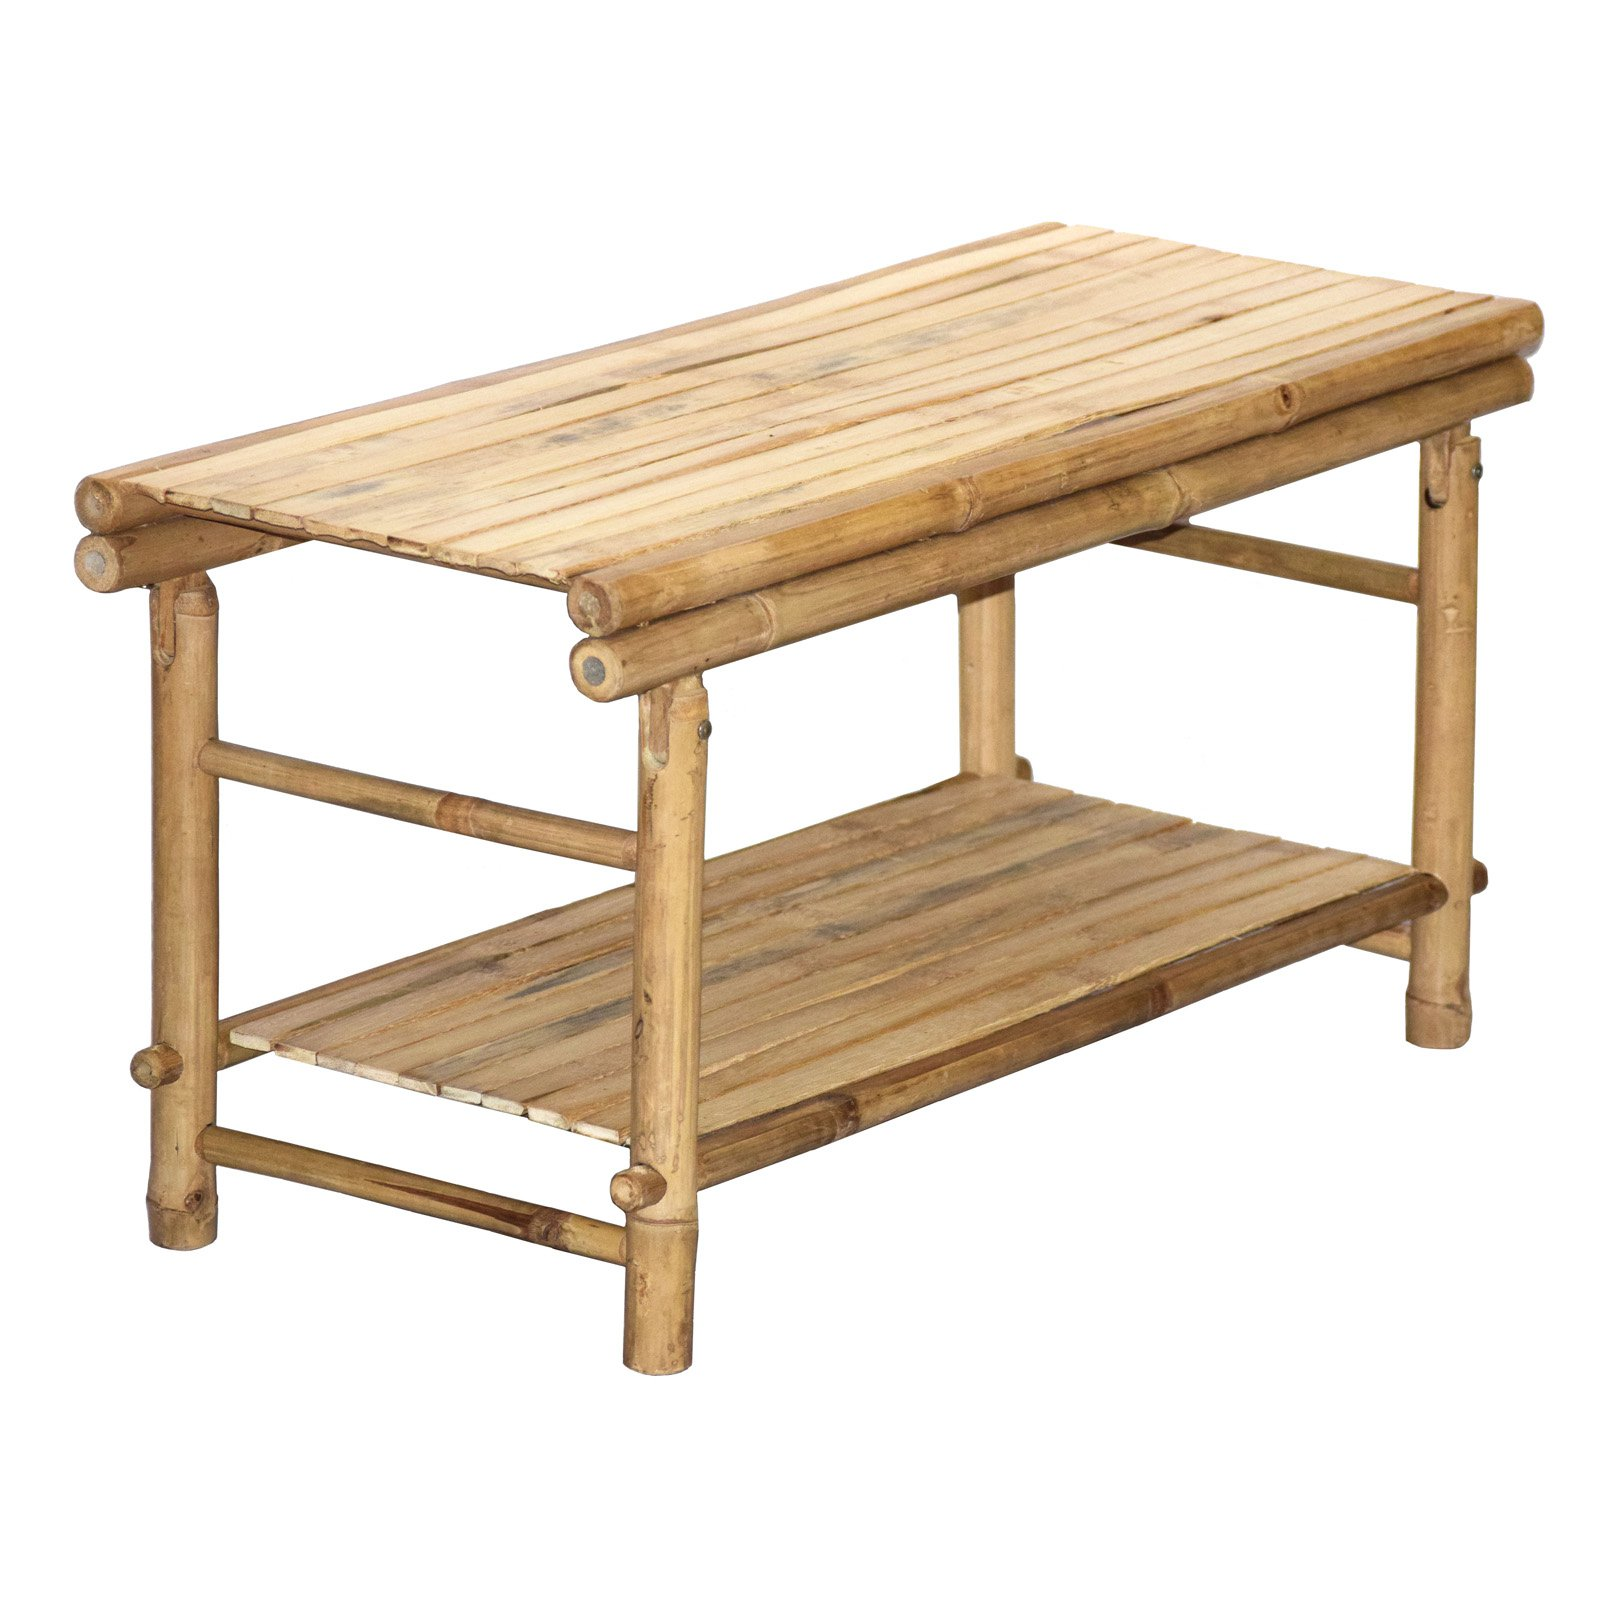 Bamboo54 Bamboo KD Flat Top Low Table